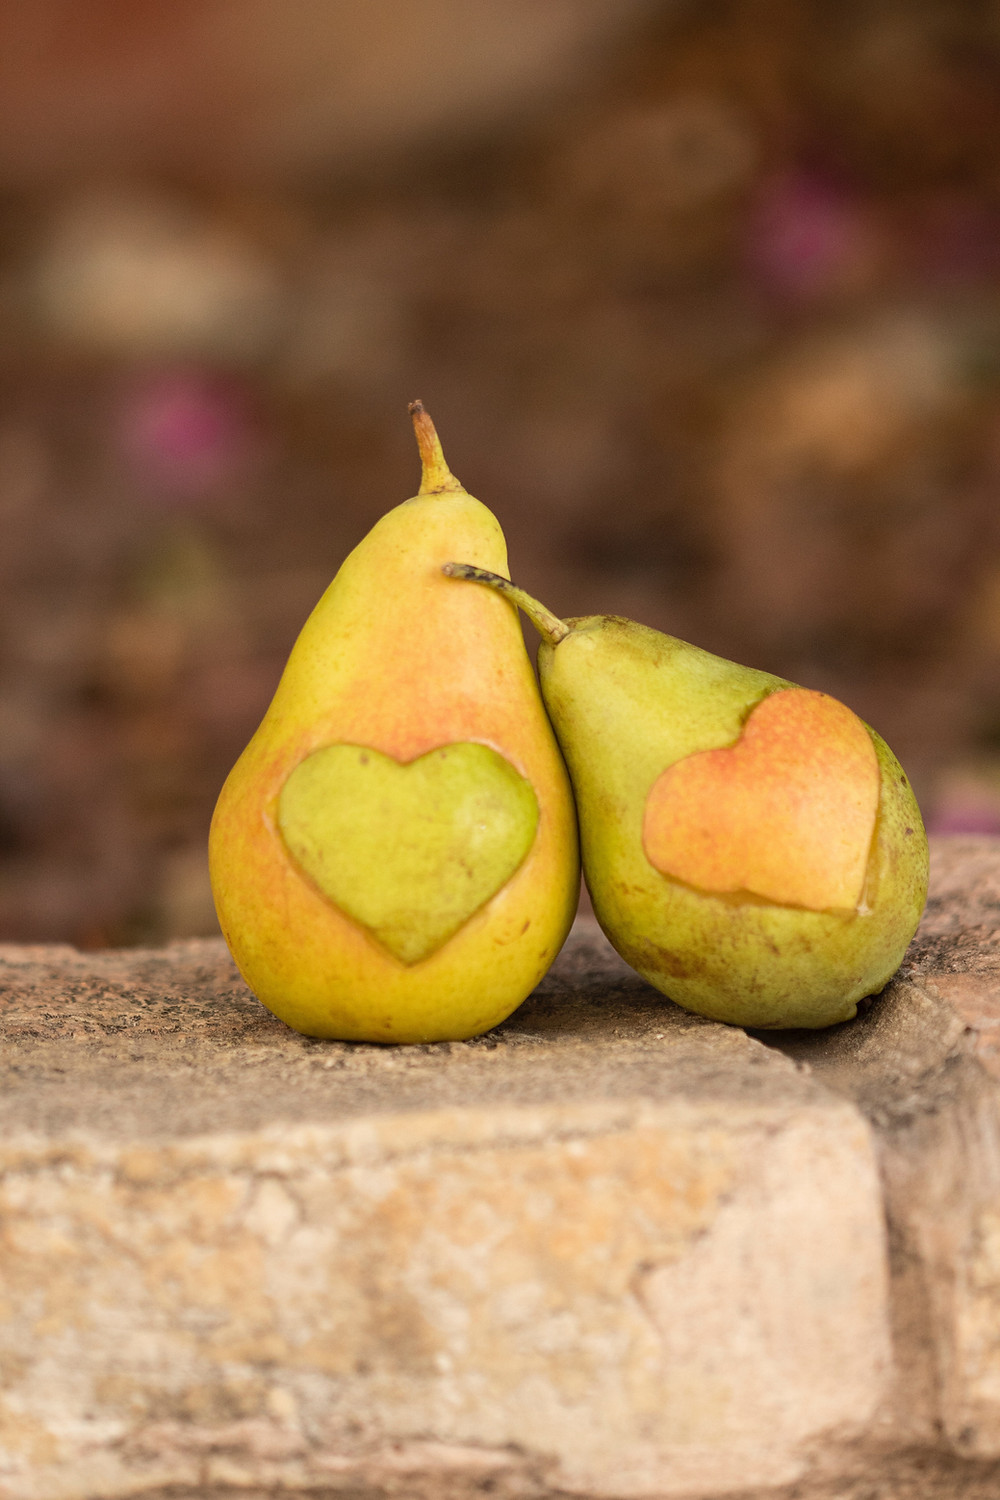 Two pears with hearts carved on them